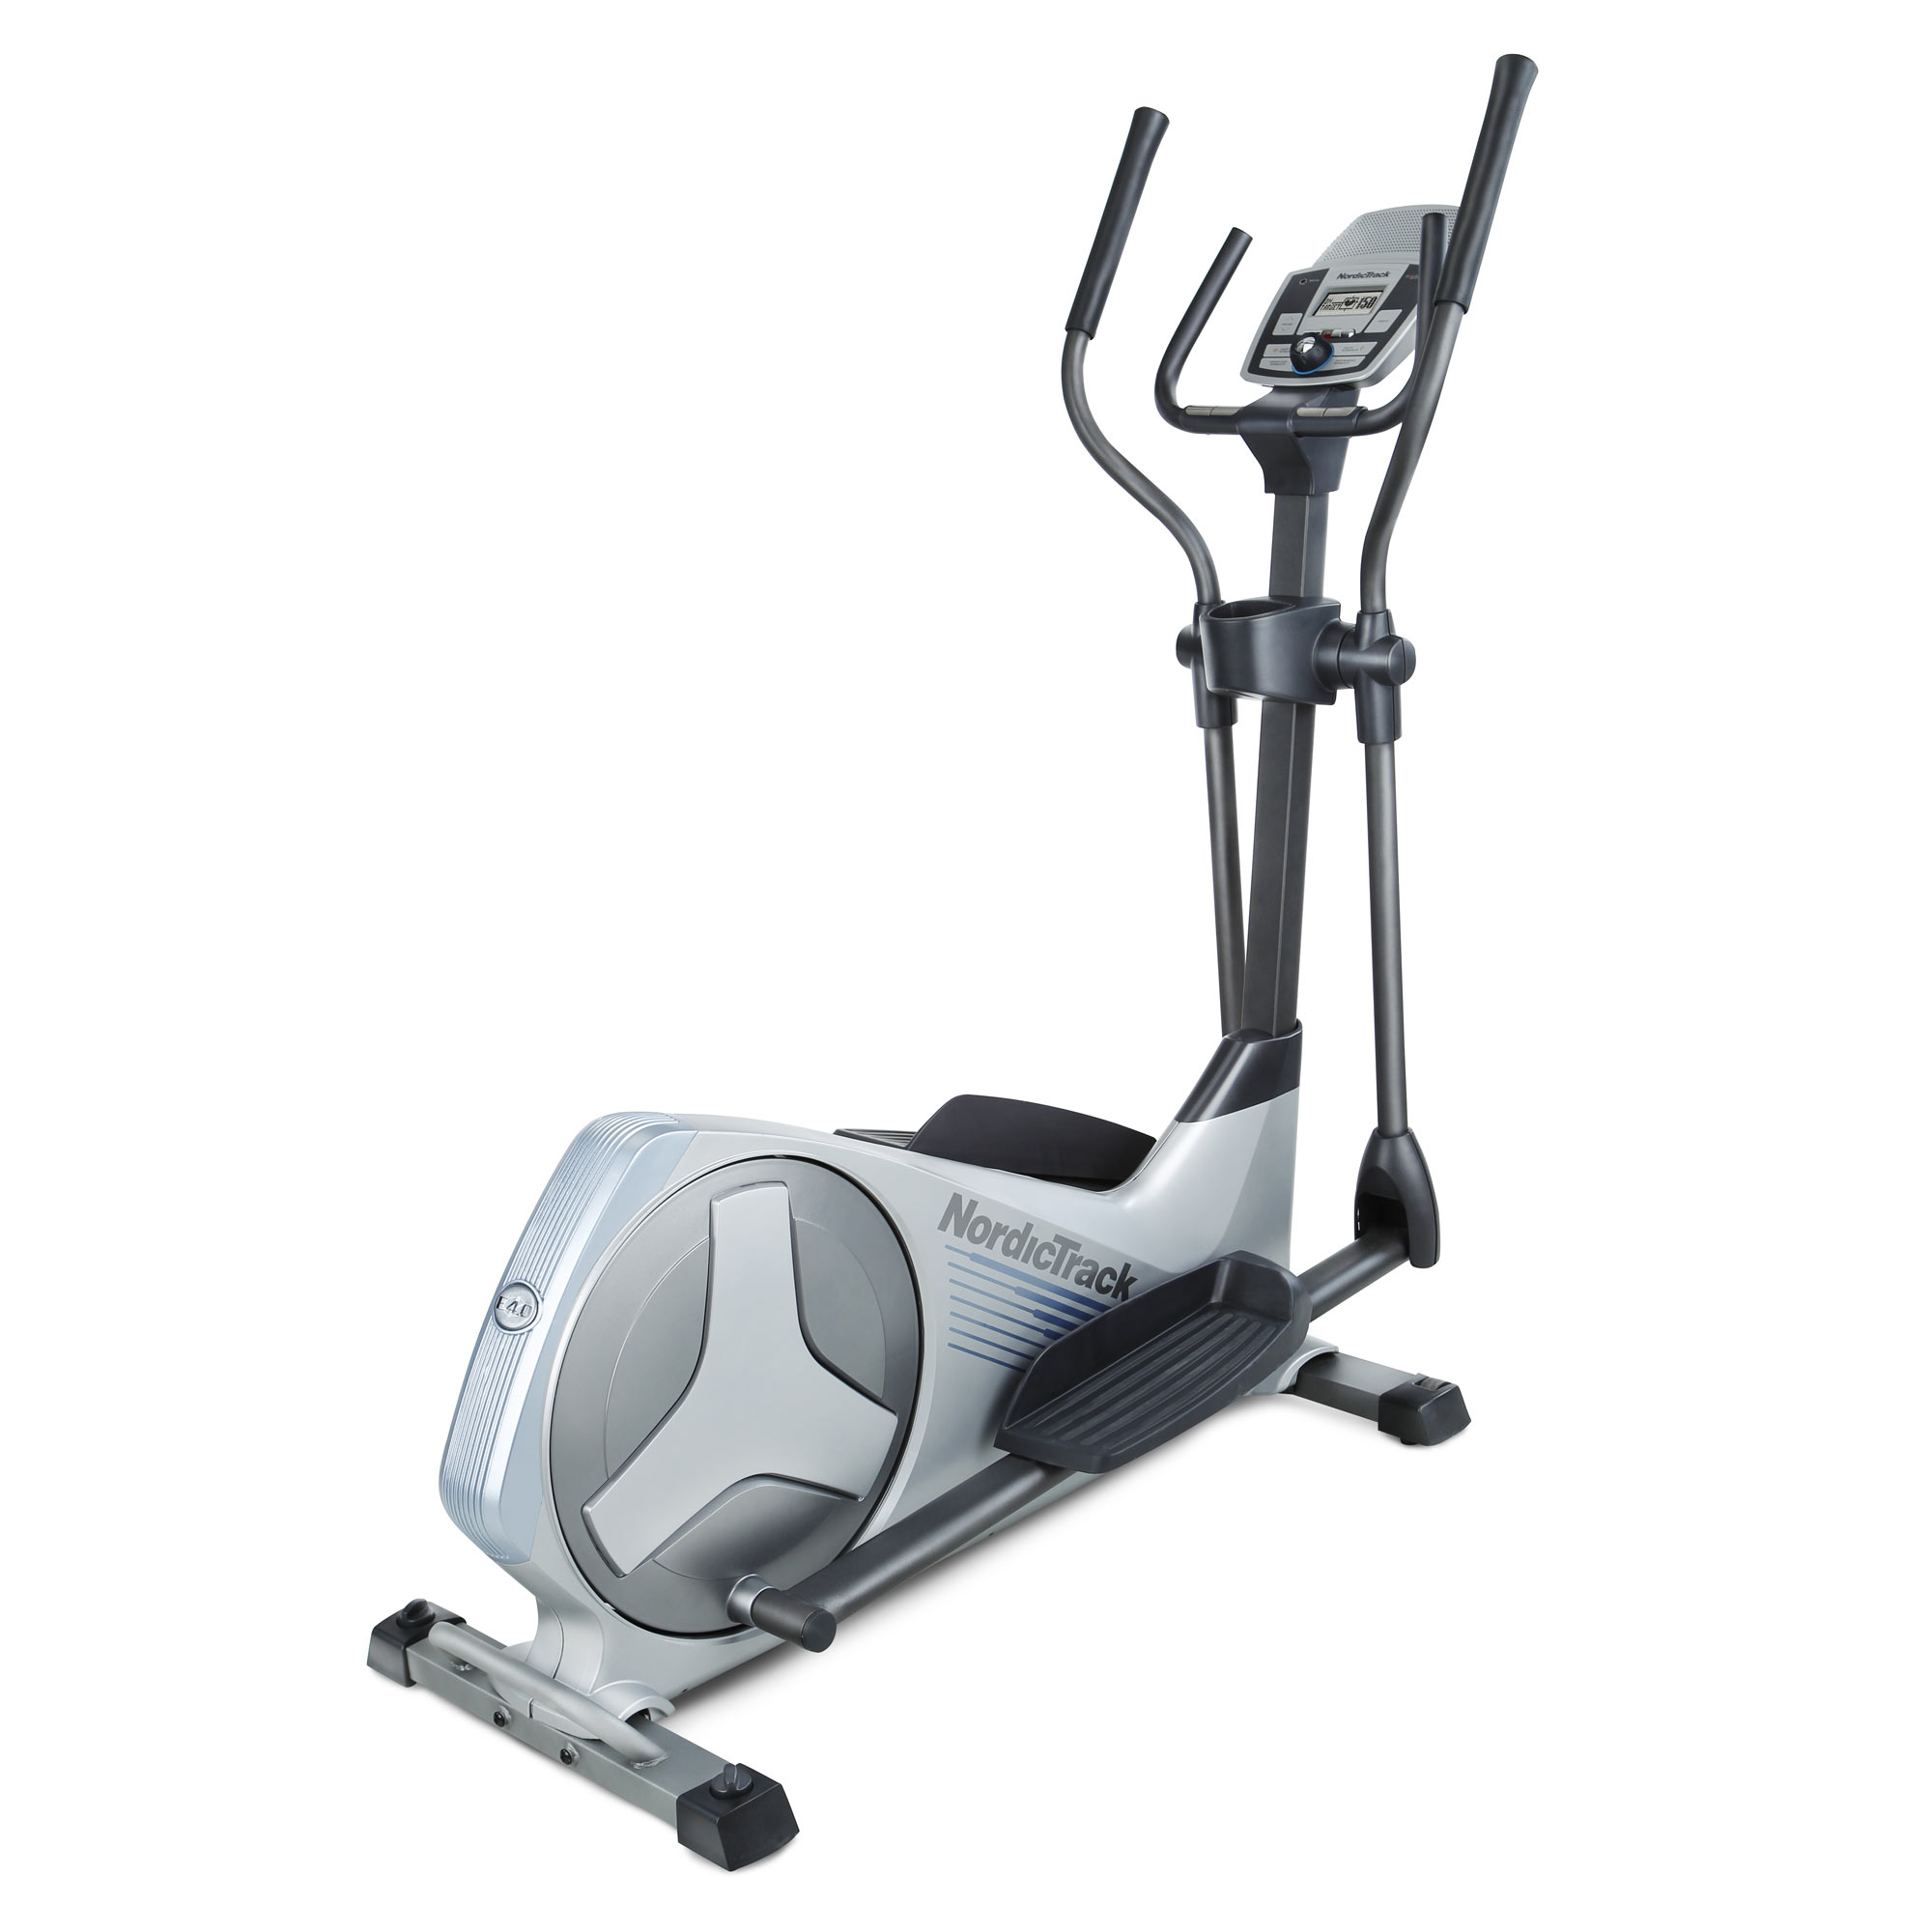 NordicTrack E4.0 Elliptical Cross Trainer